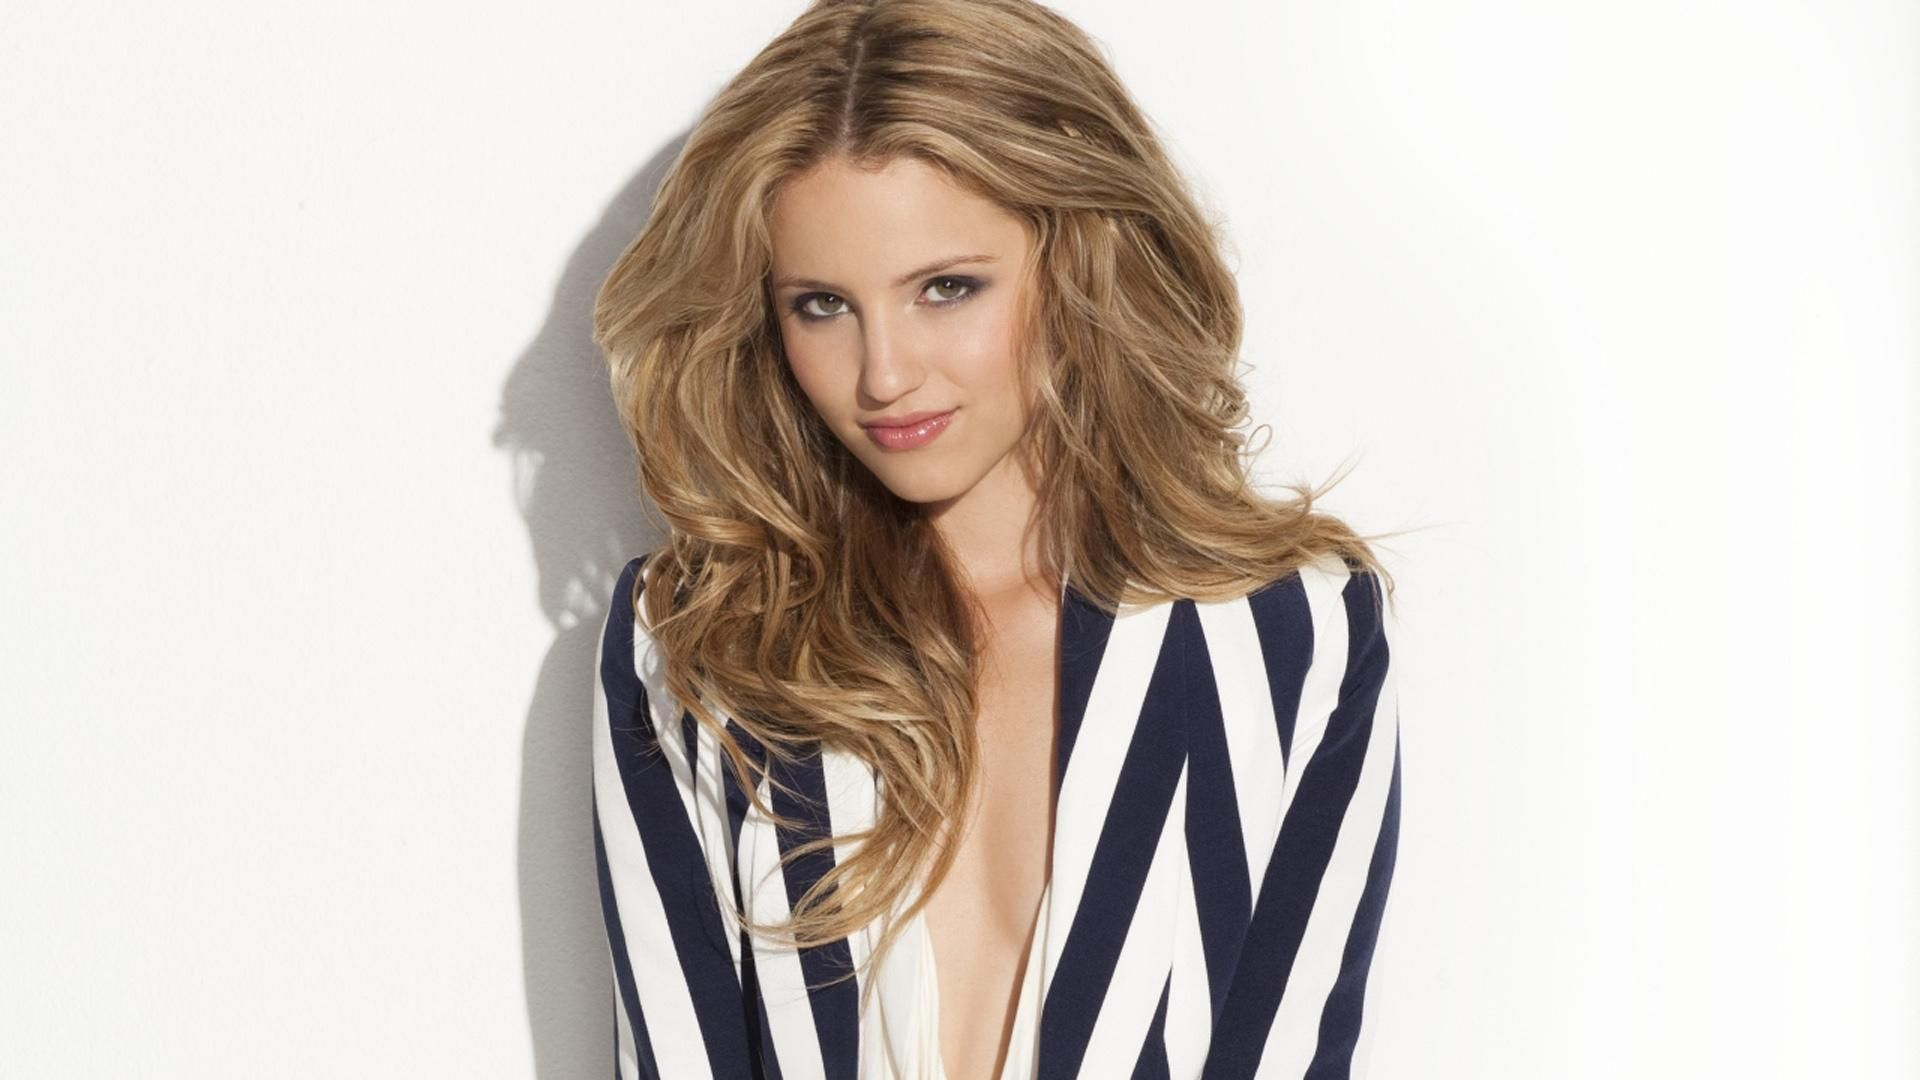 1920x1080 - Dianna Agron Wallpapers 4